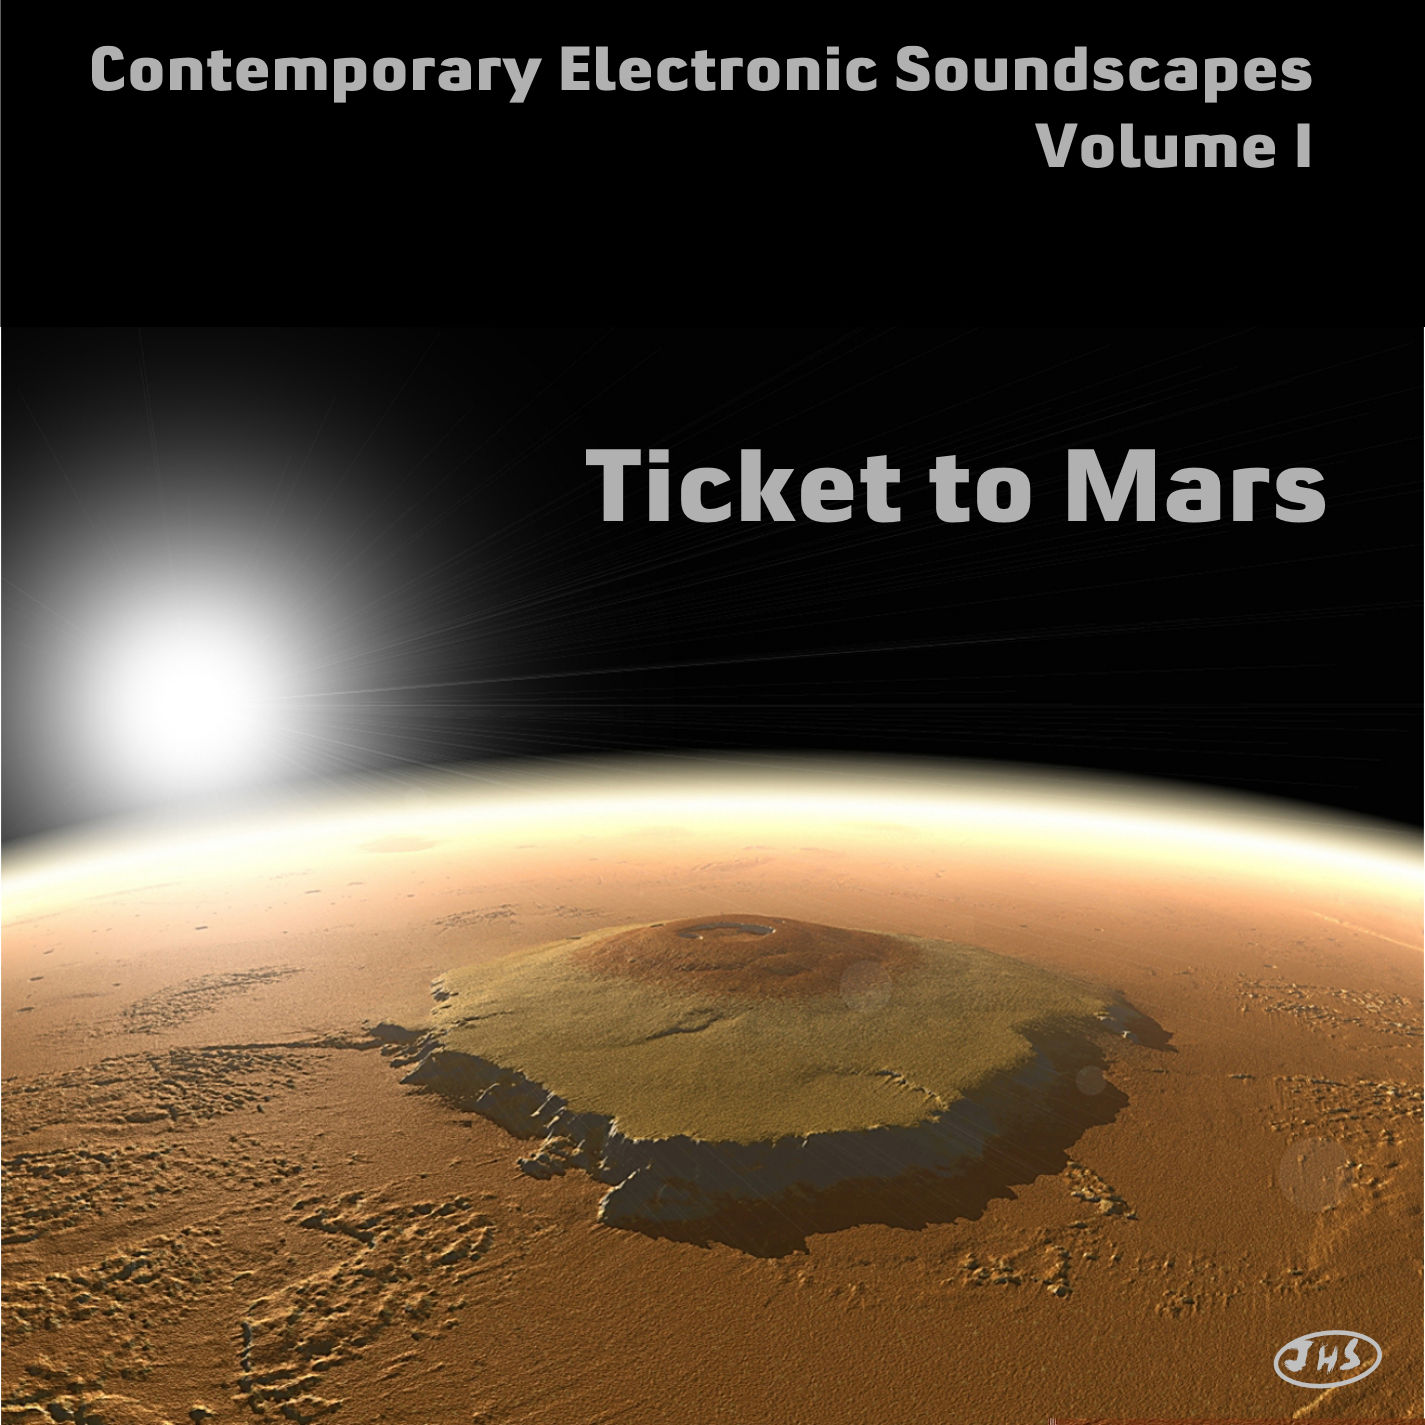 CES Volume I Ticket to Mars okładka przód 1425x1425